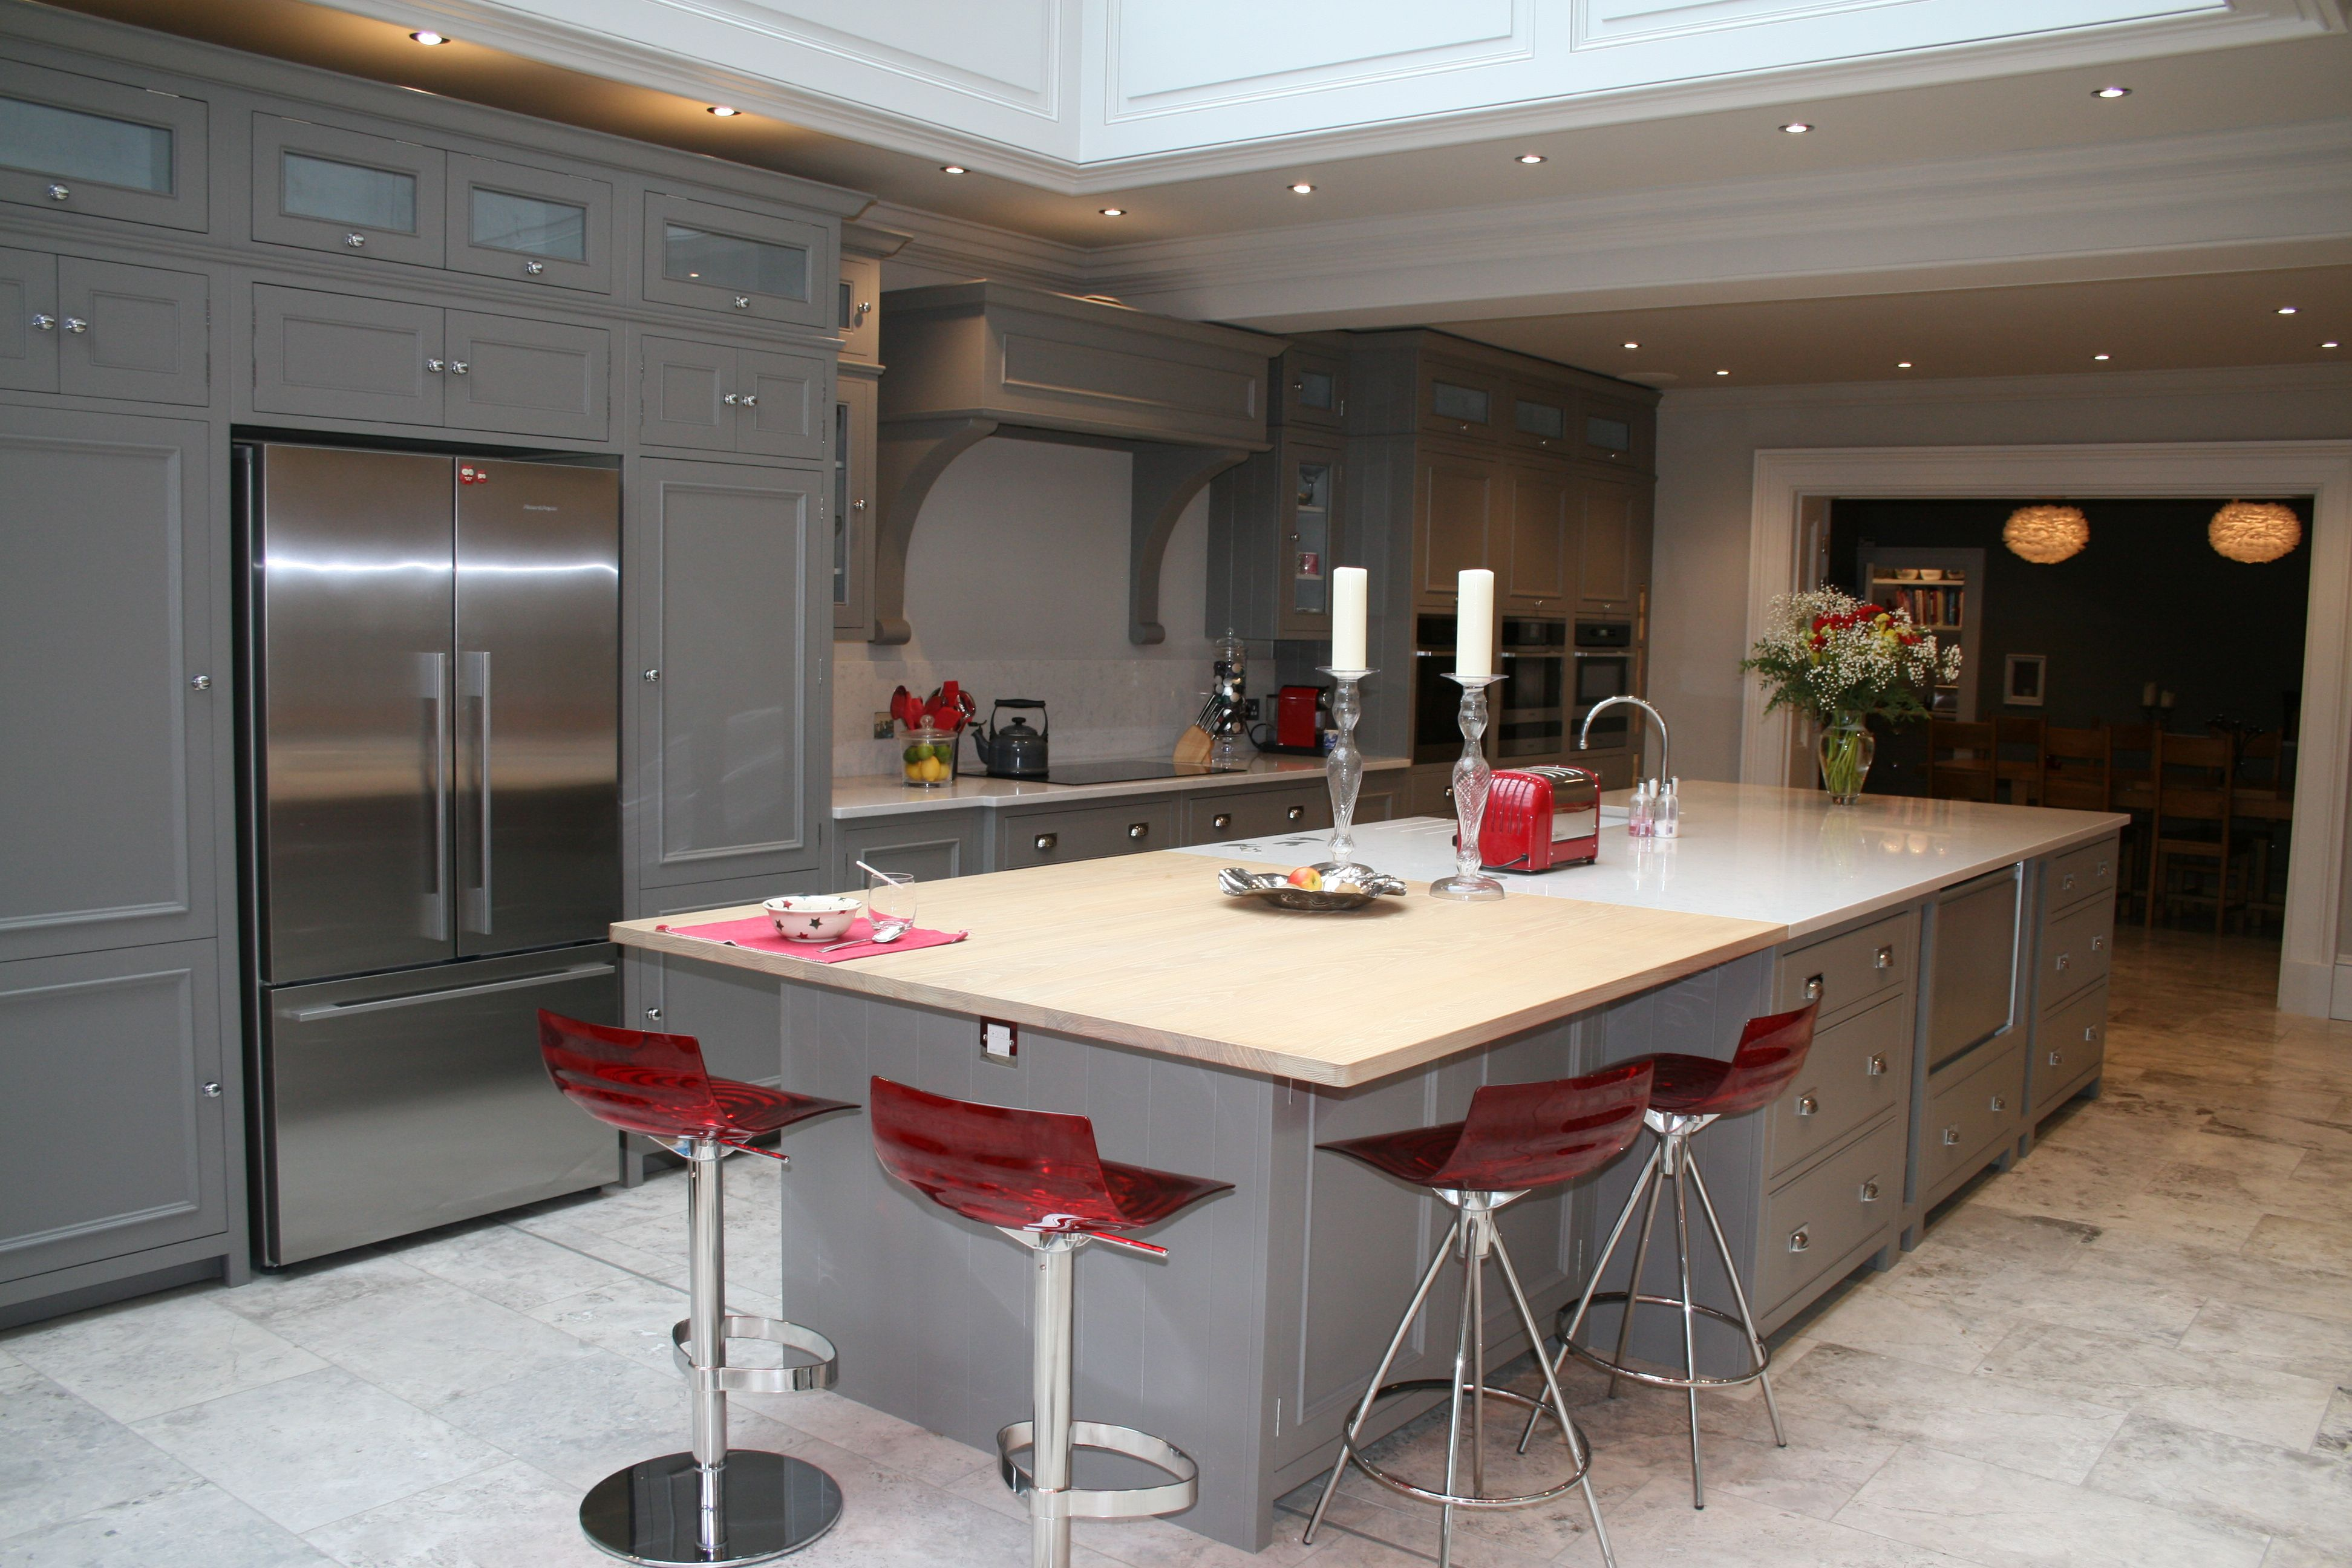 Best Neptune Chichester Kitchen Painted In Farrow And Ball 400 x 300